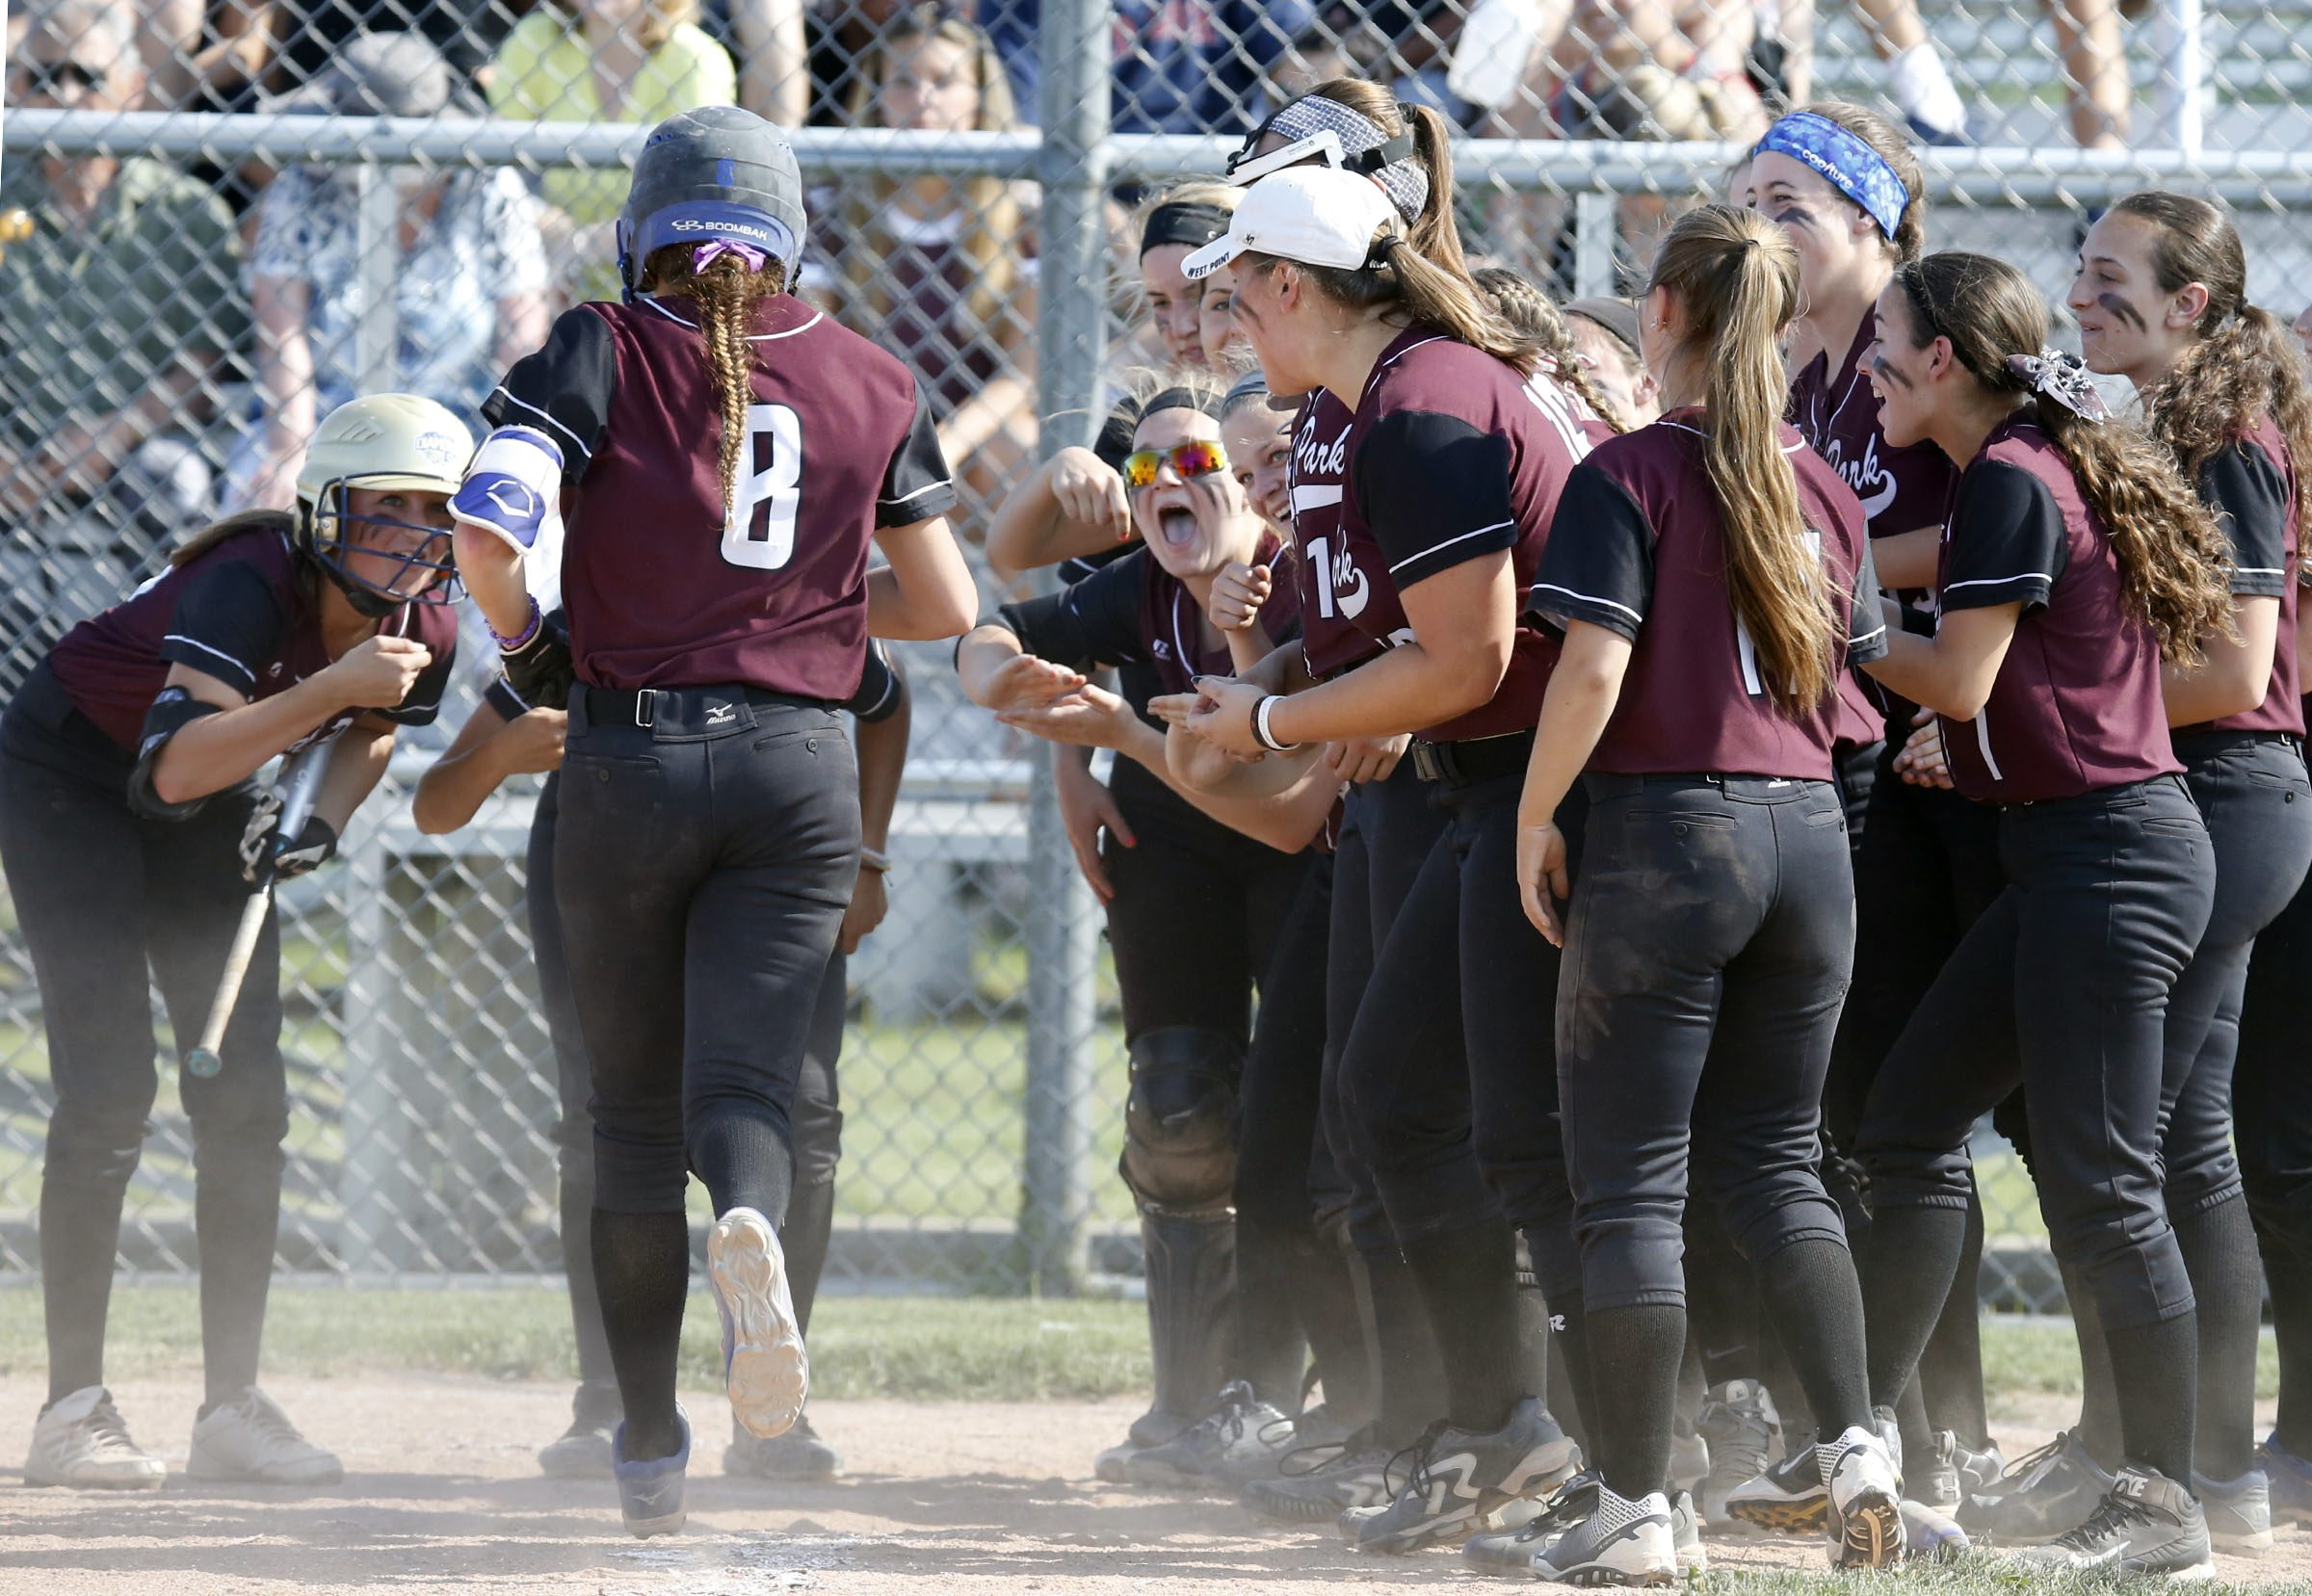 Orchard Park's Madison Stewart is congratulated by teammates after hitting a home run against Niagara Falls during the Section VI Class AA final. (Harry Scull Jr./Buffalo News)